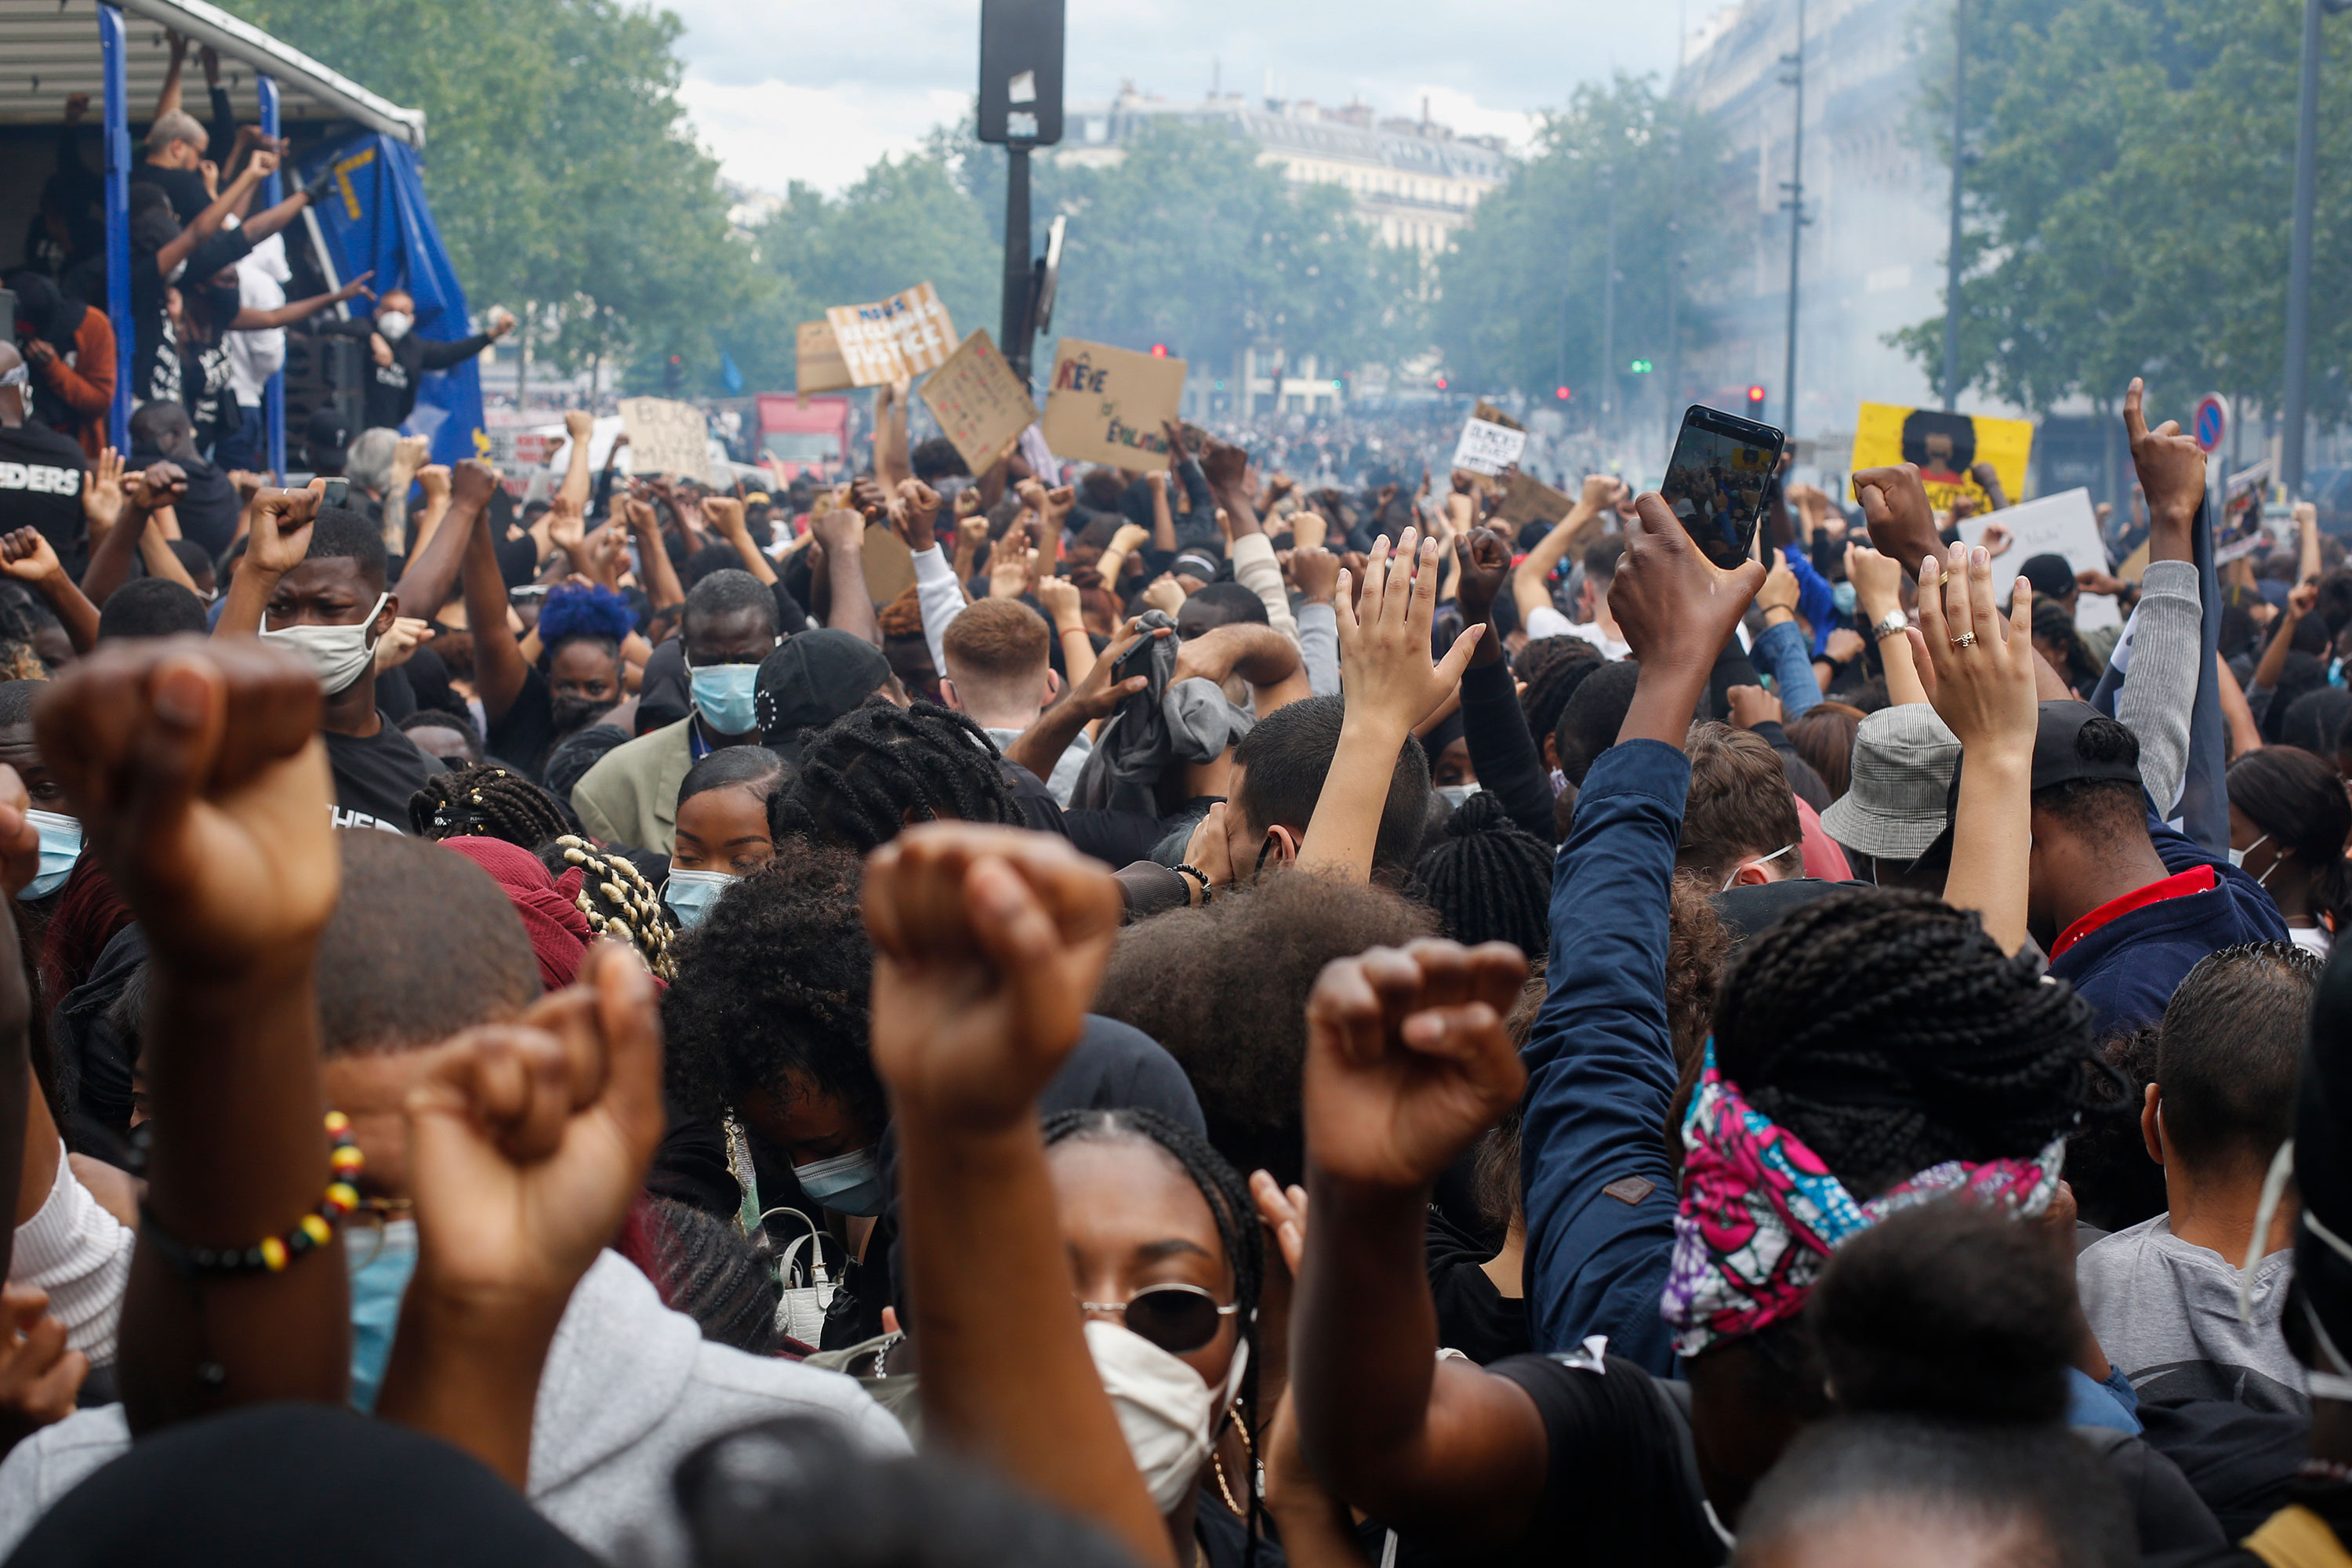 Thousands of people take part in a demonstration against police brutality and racism in Paris on Saturday, June 13.